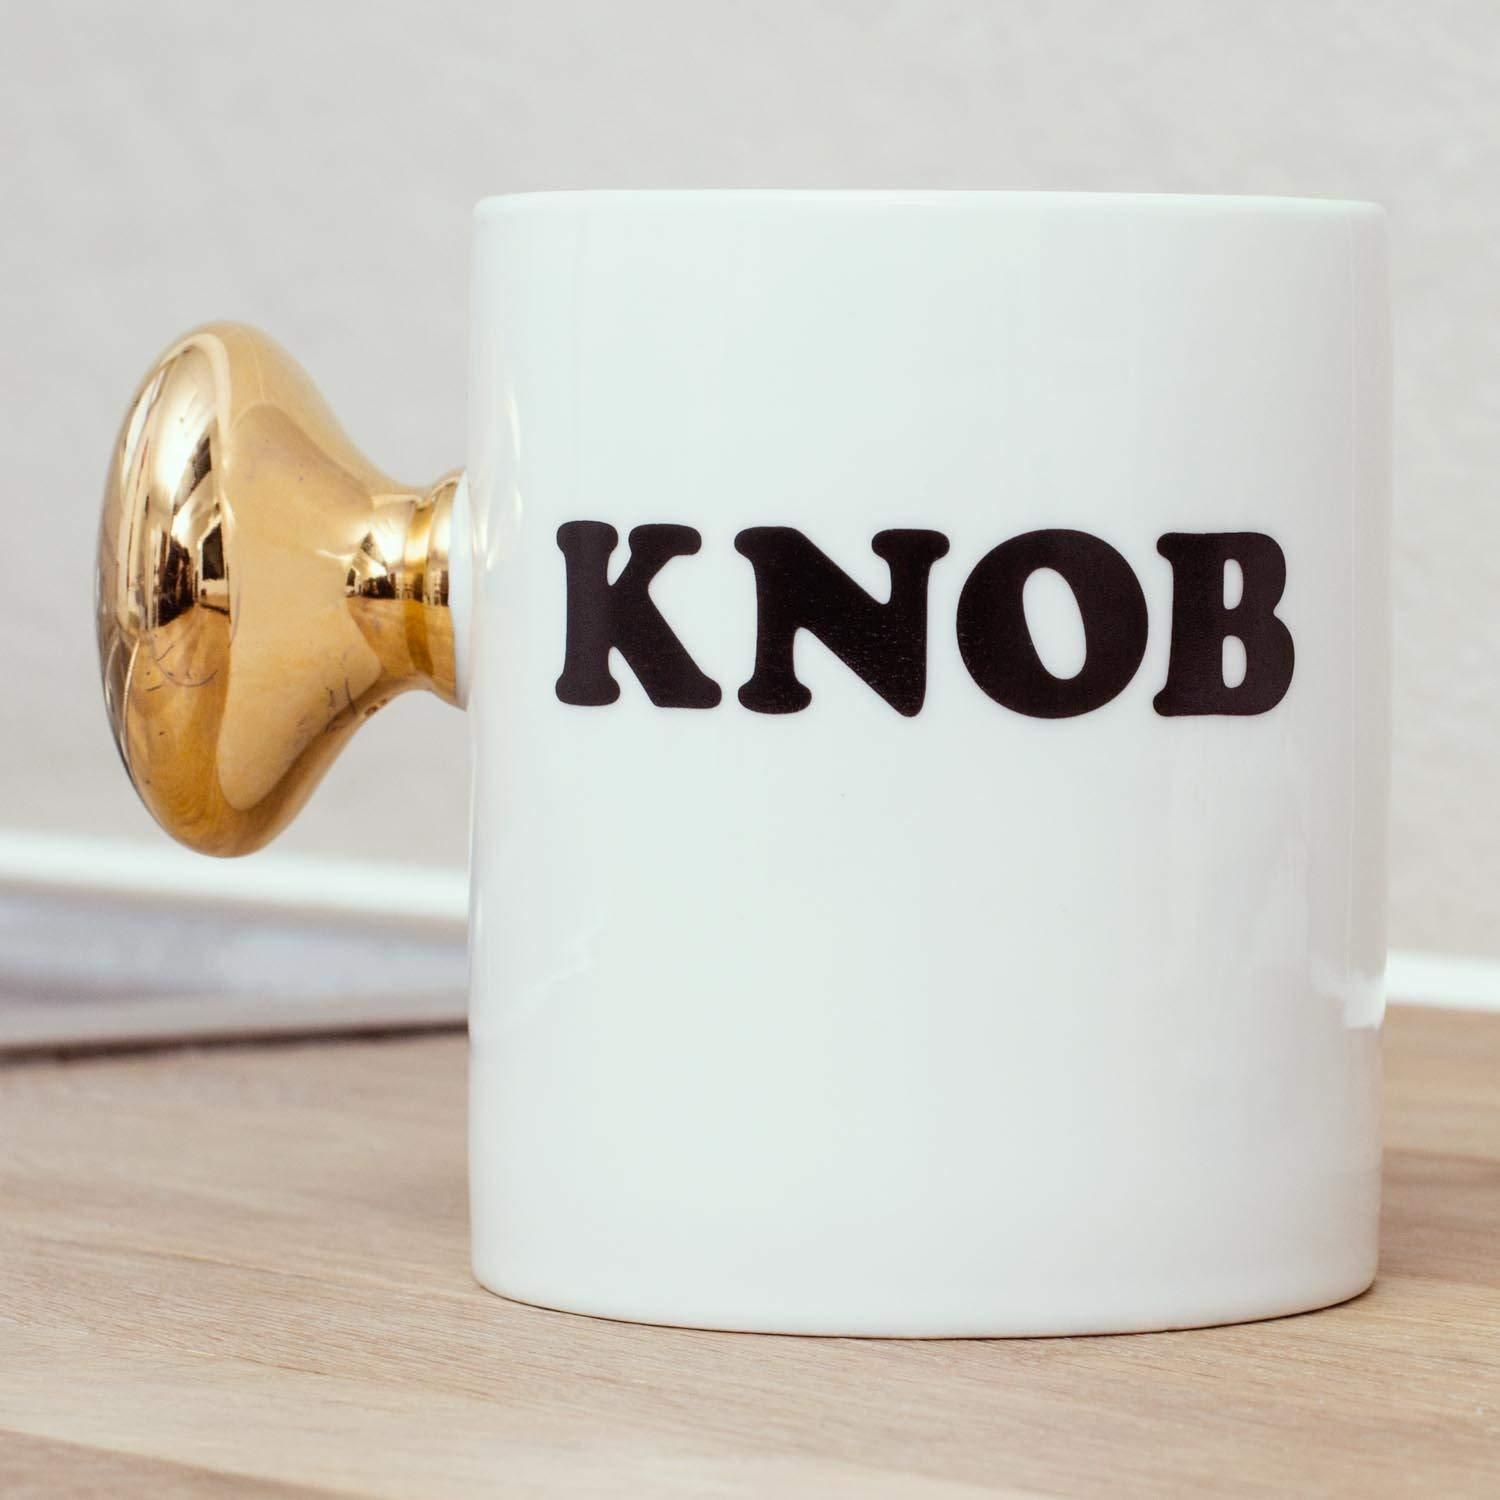 Knob Mug | Father's Day gifts for your ex | Beanstalk Mums